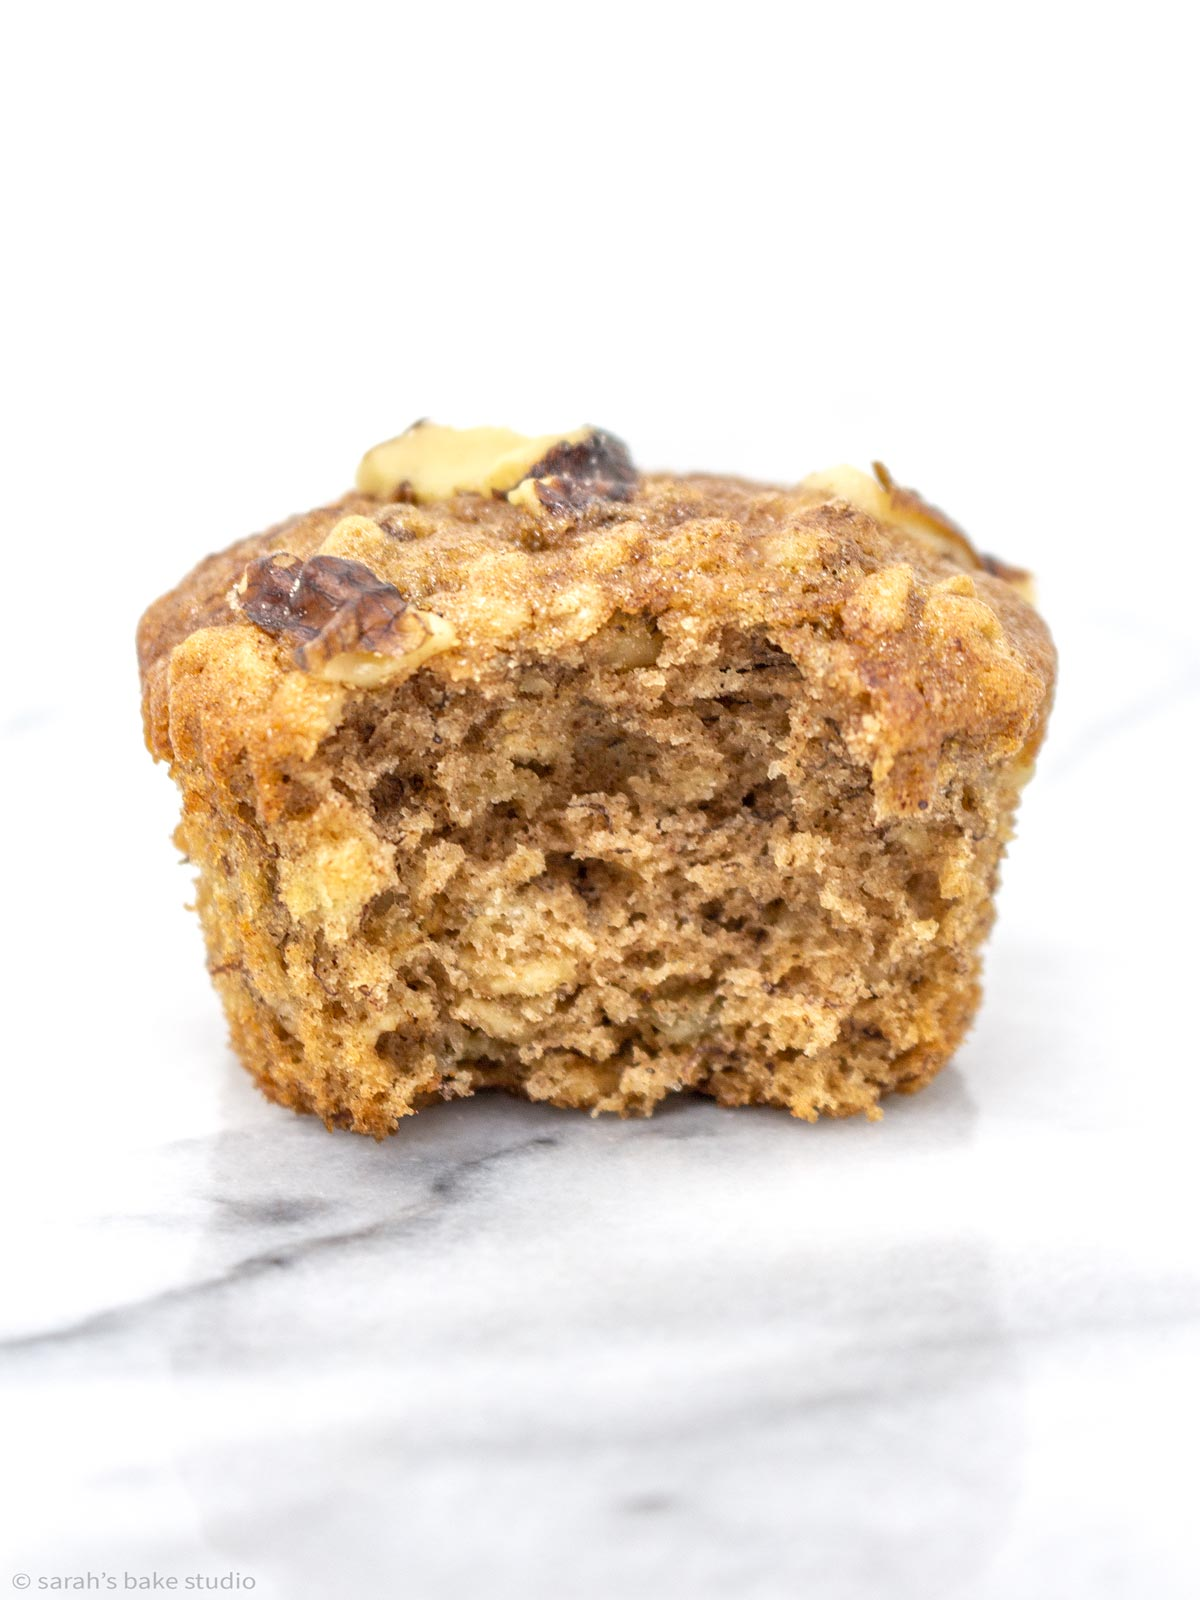 a banana walnut oatmeal muffin with a bite out of it.